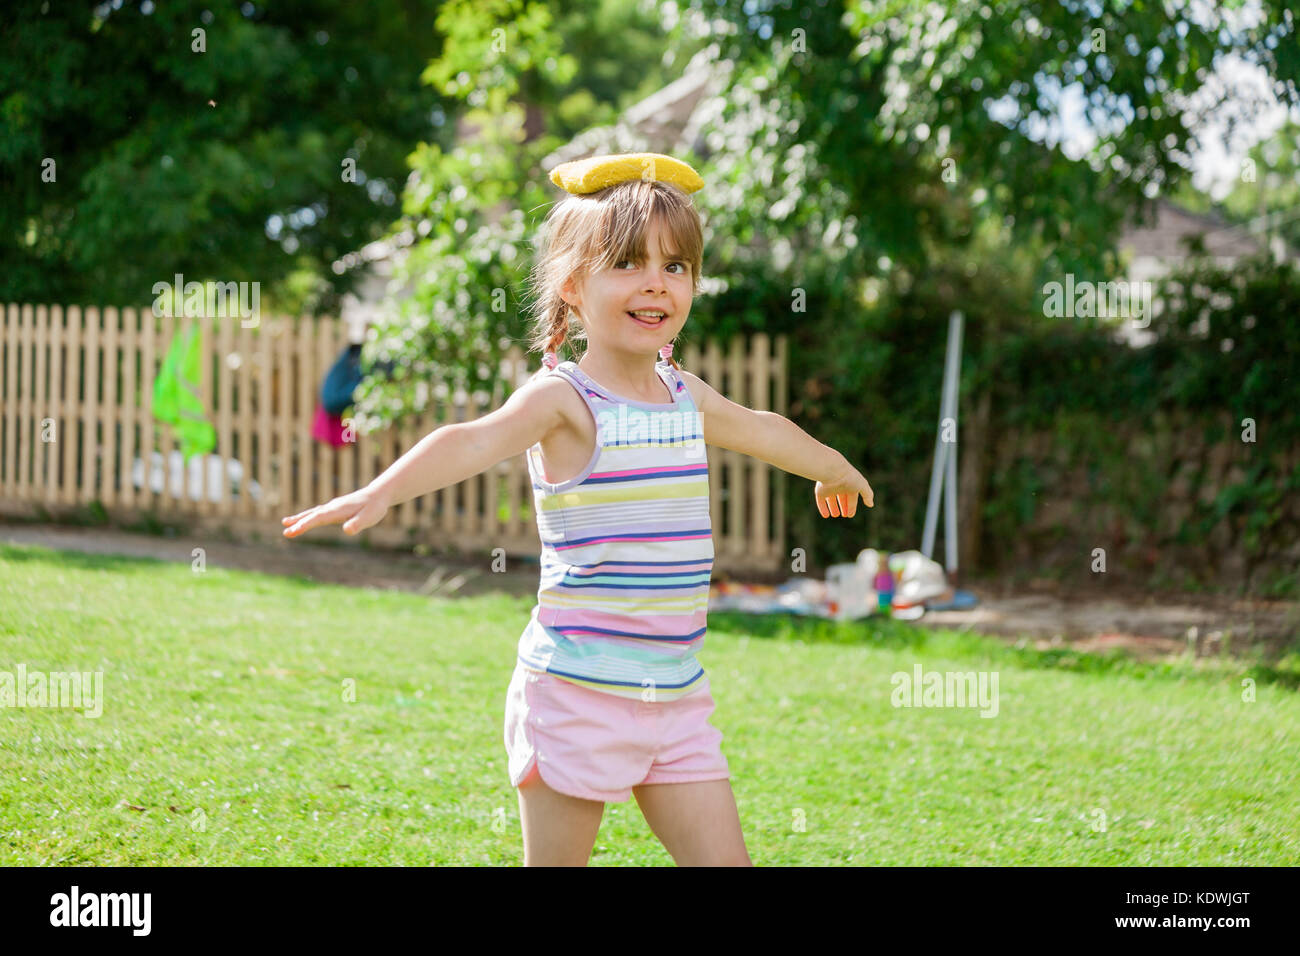 Pretty elementary age little girl on sports day balancing yellow bean bag on head. Happy fun back to school concept. - Stock Image